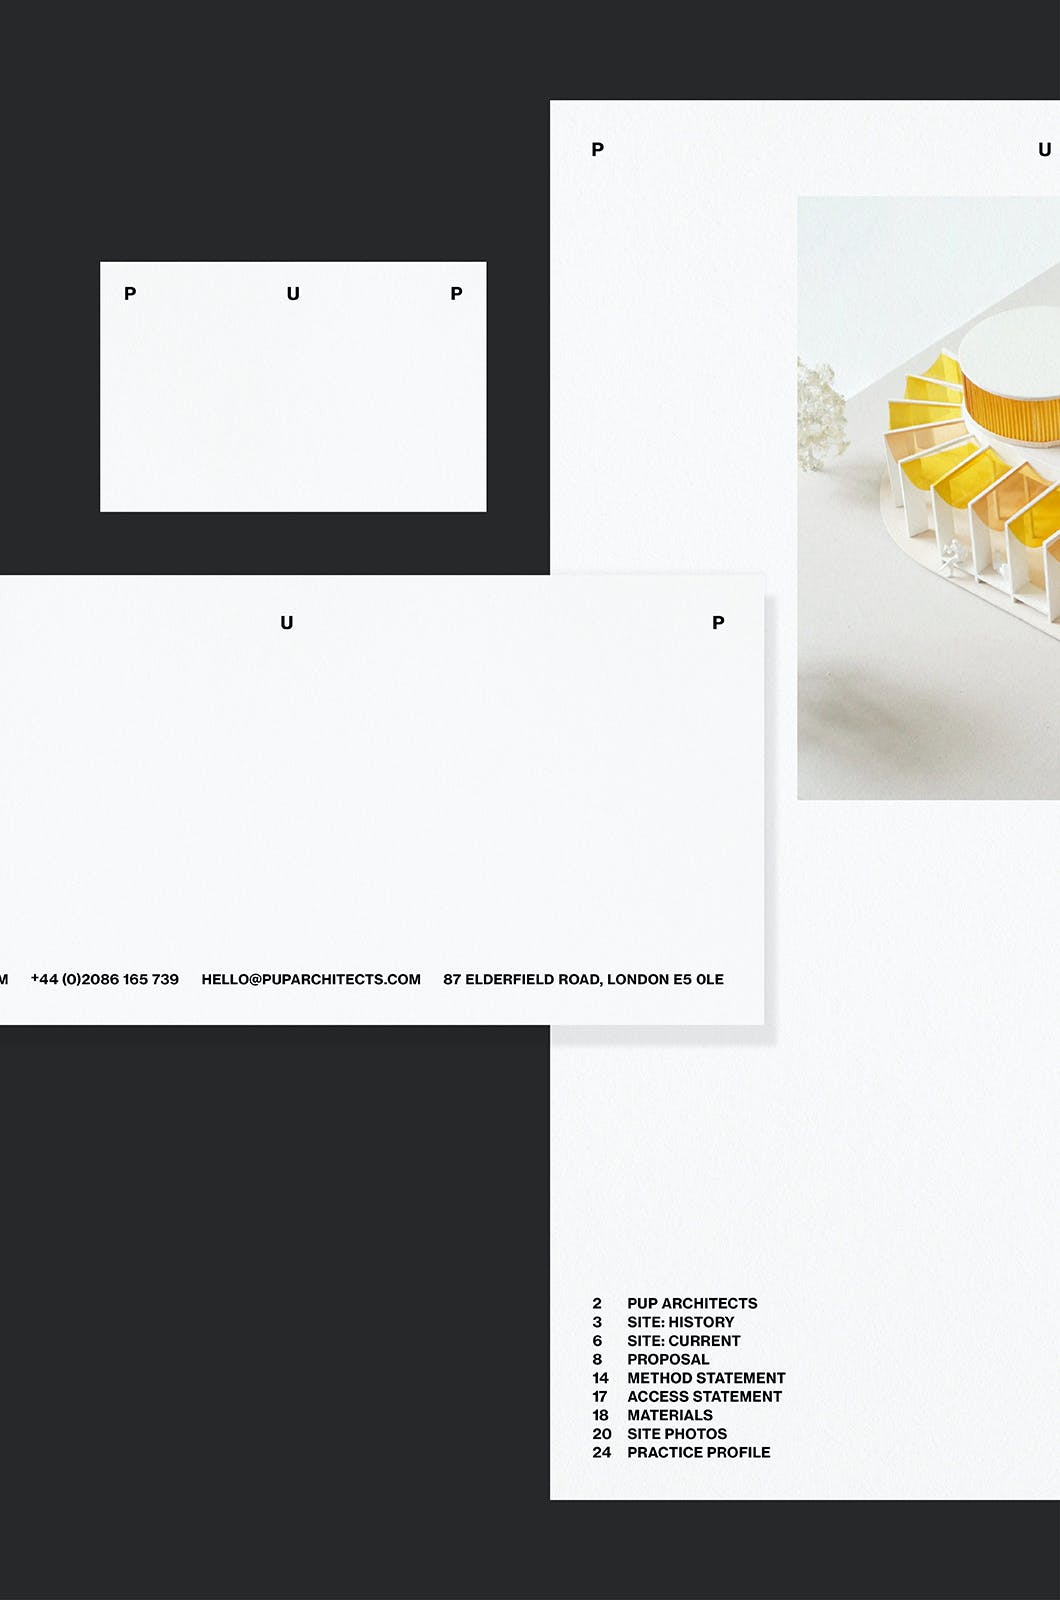 PUP Architects, identity, Graphic Design by Wolfe Hall